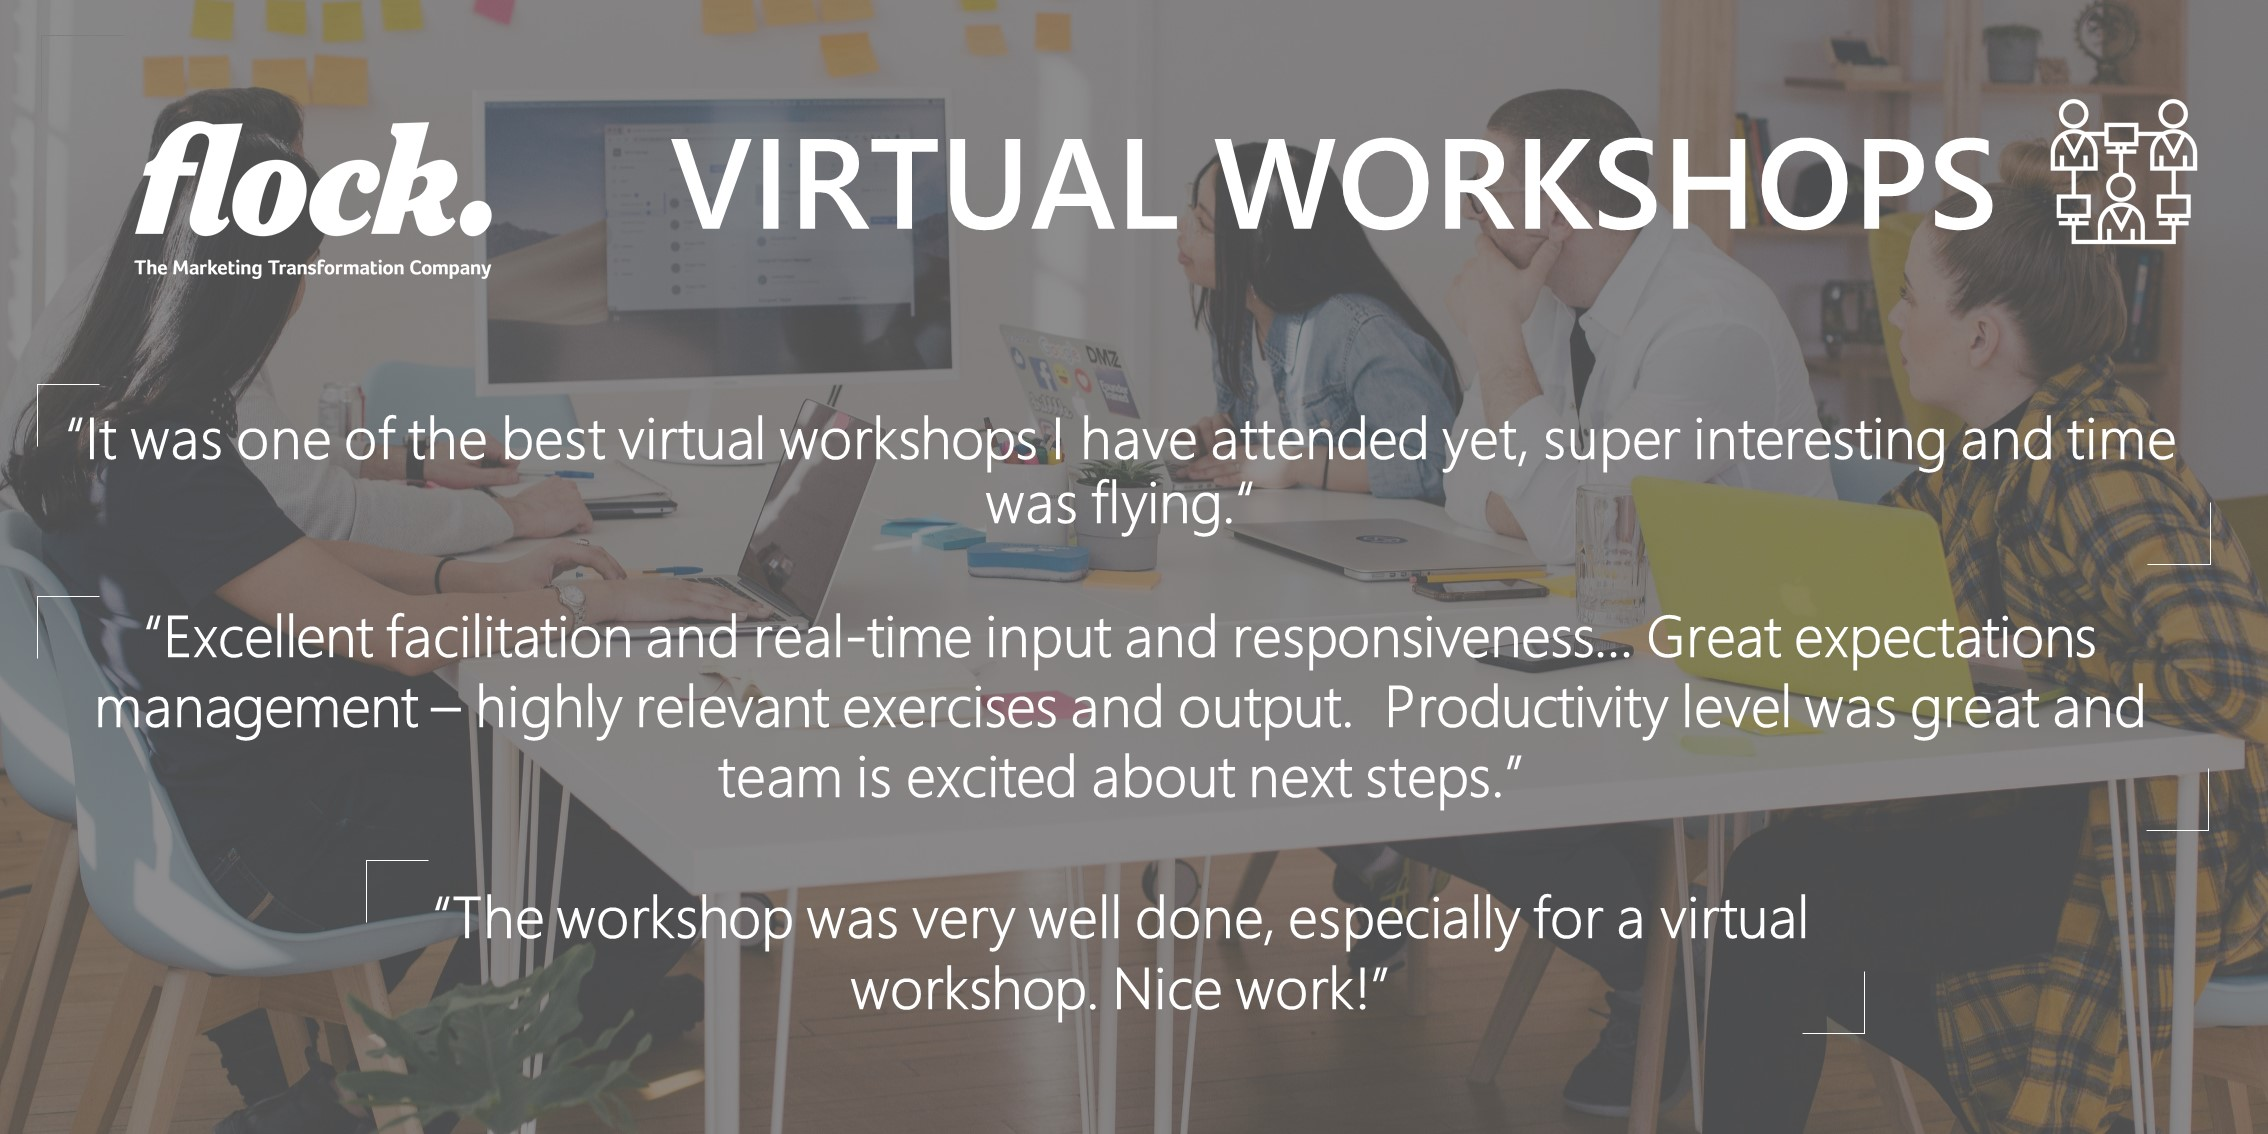 Flock Virtual Workshops